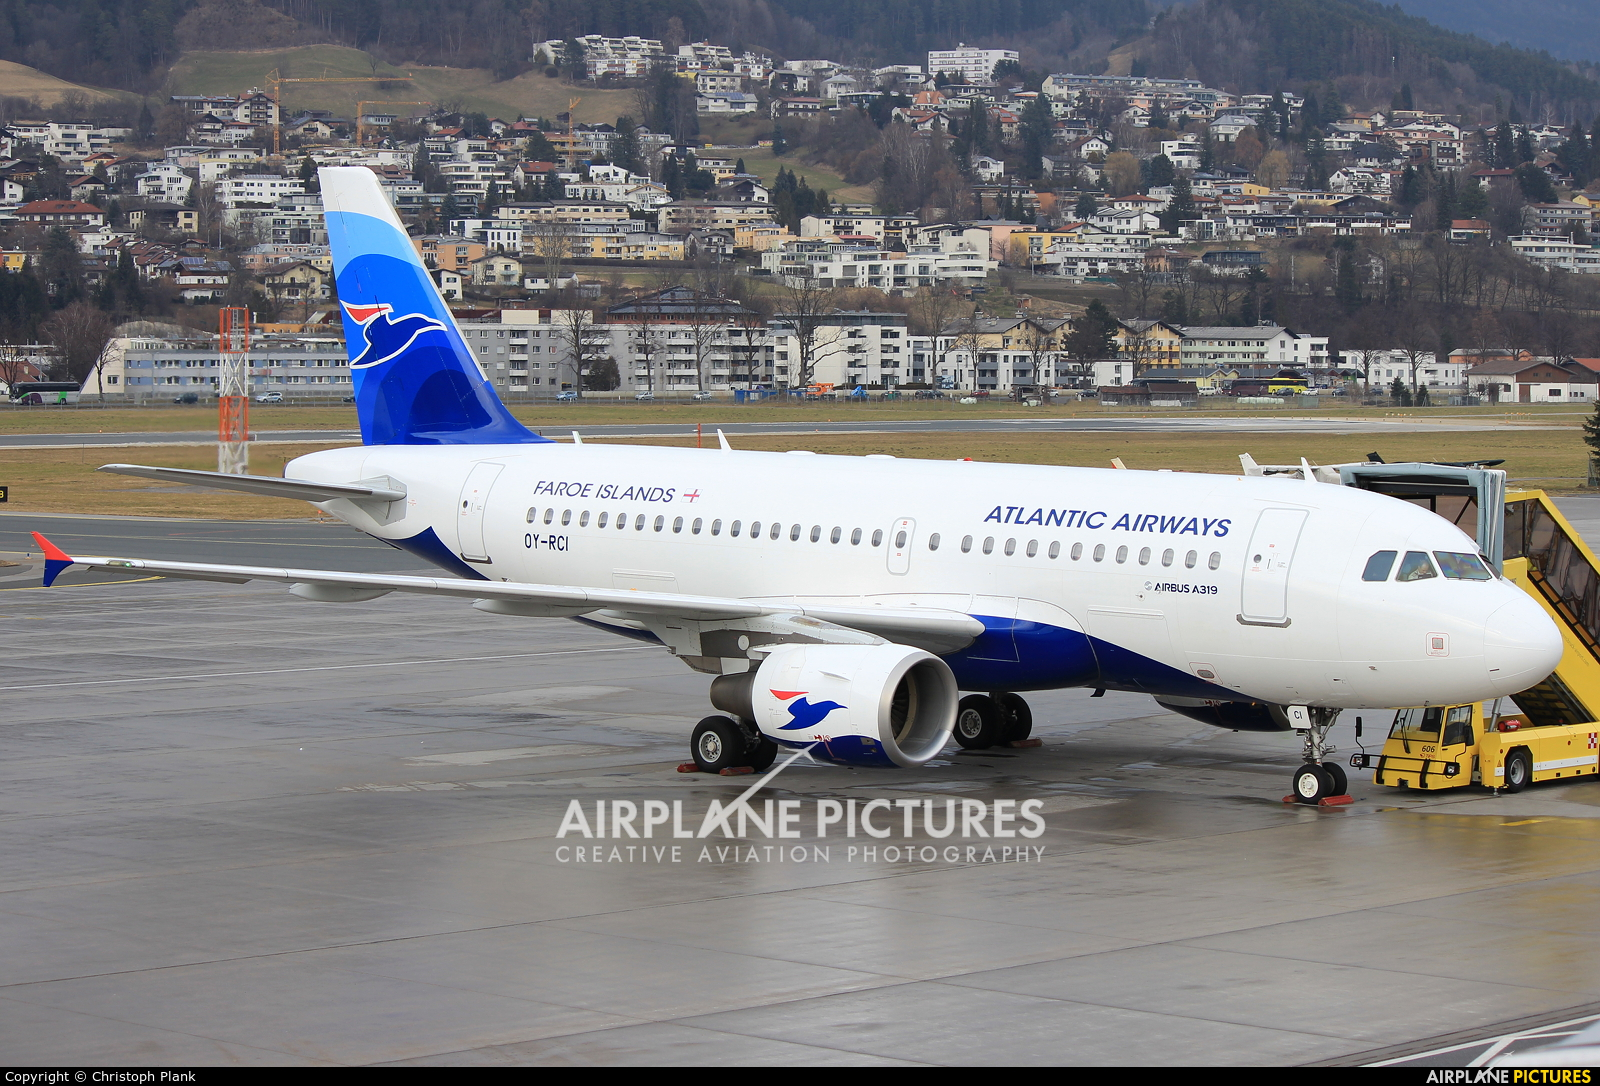 Atlantic Airways OY-RCI aircraft at Innsbruck